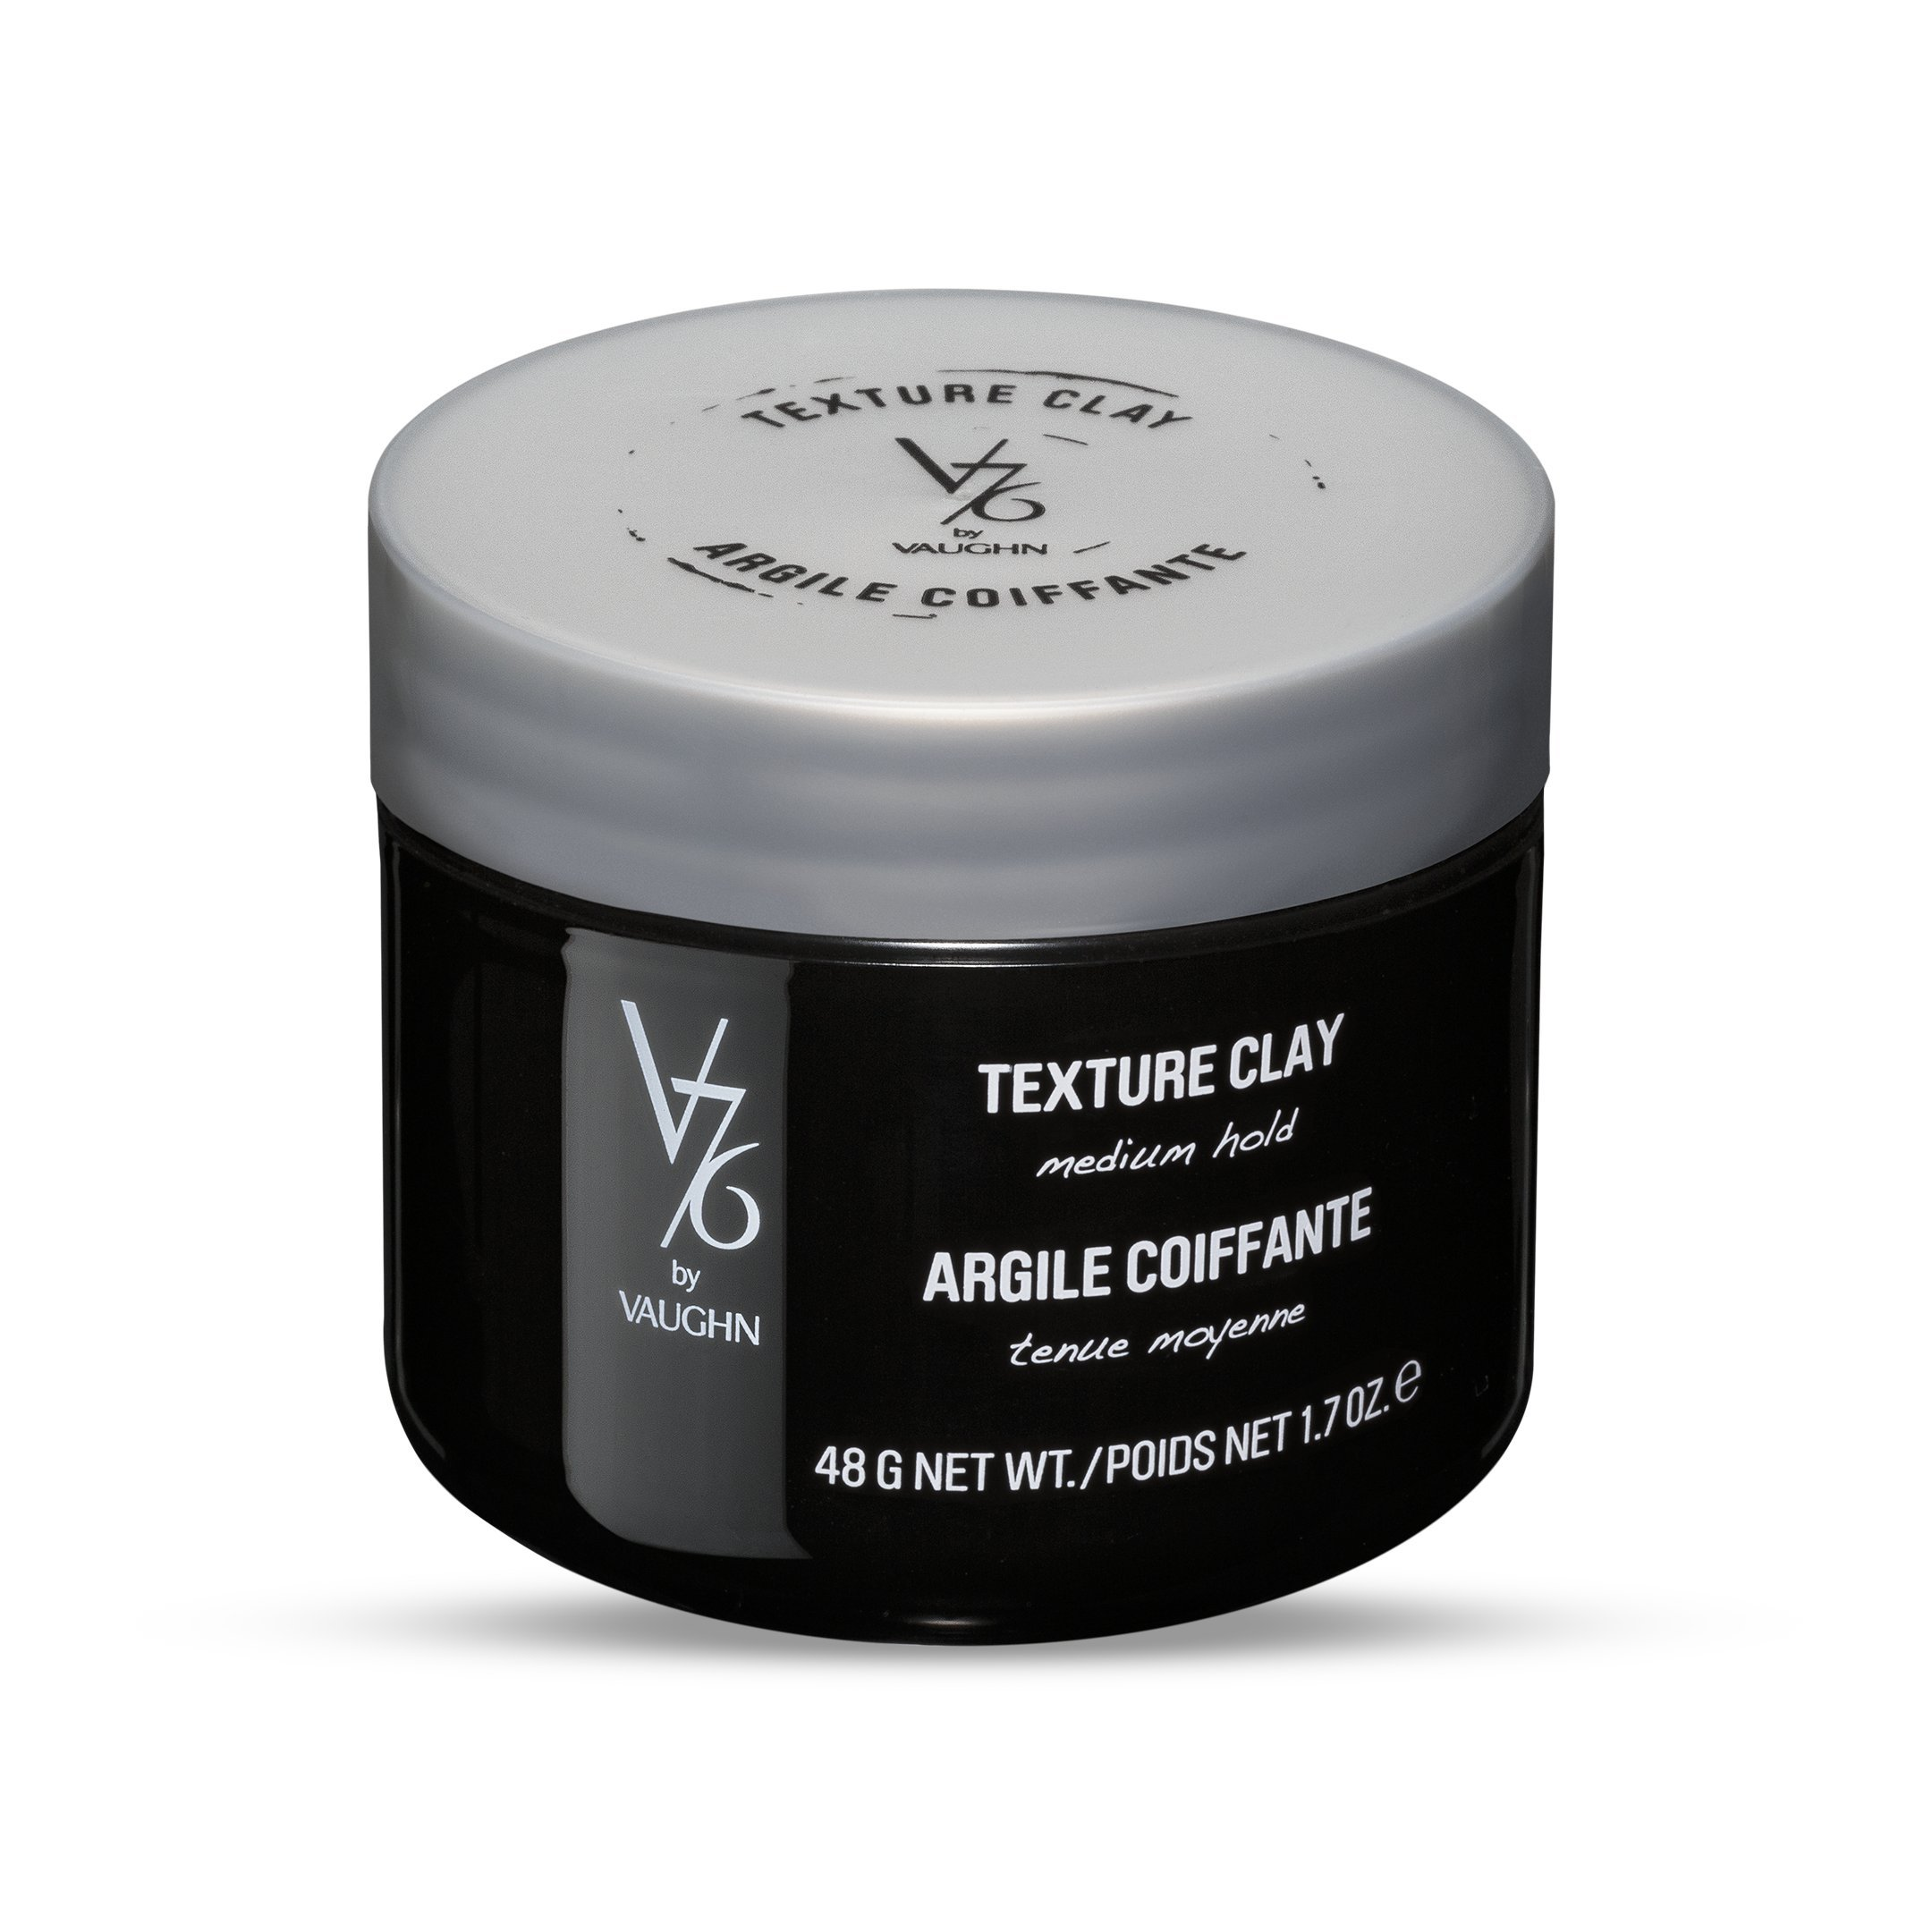 V76 by Vaughn TEXTURE CLAY Medium Hold Formula for Men